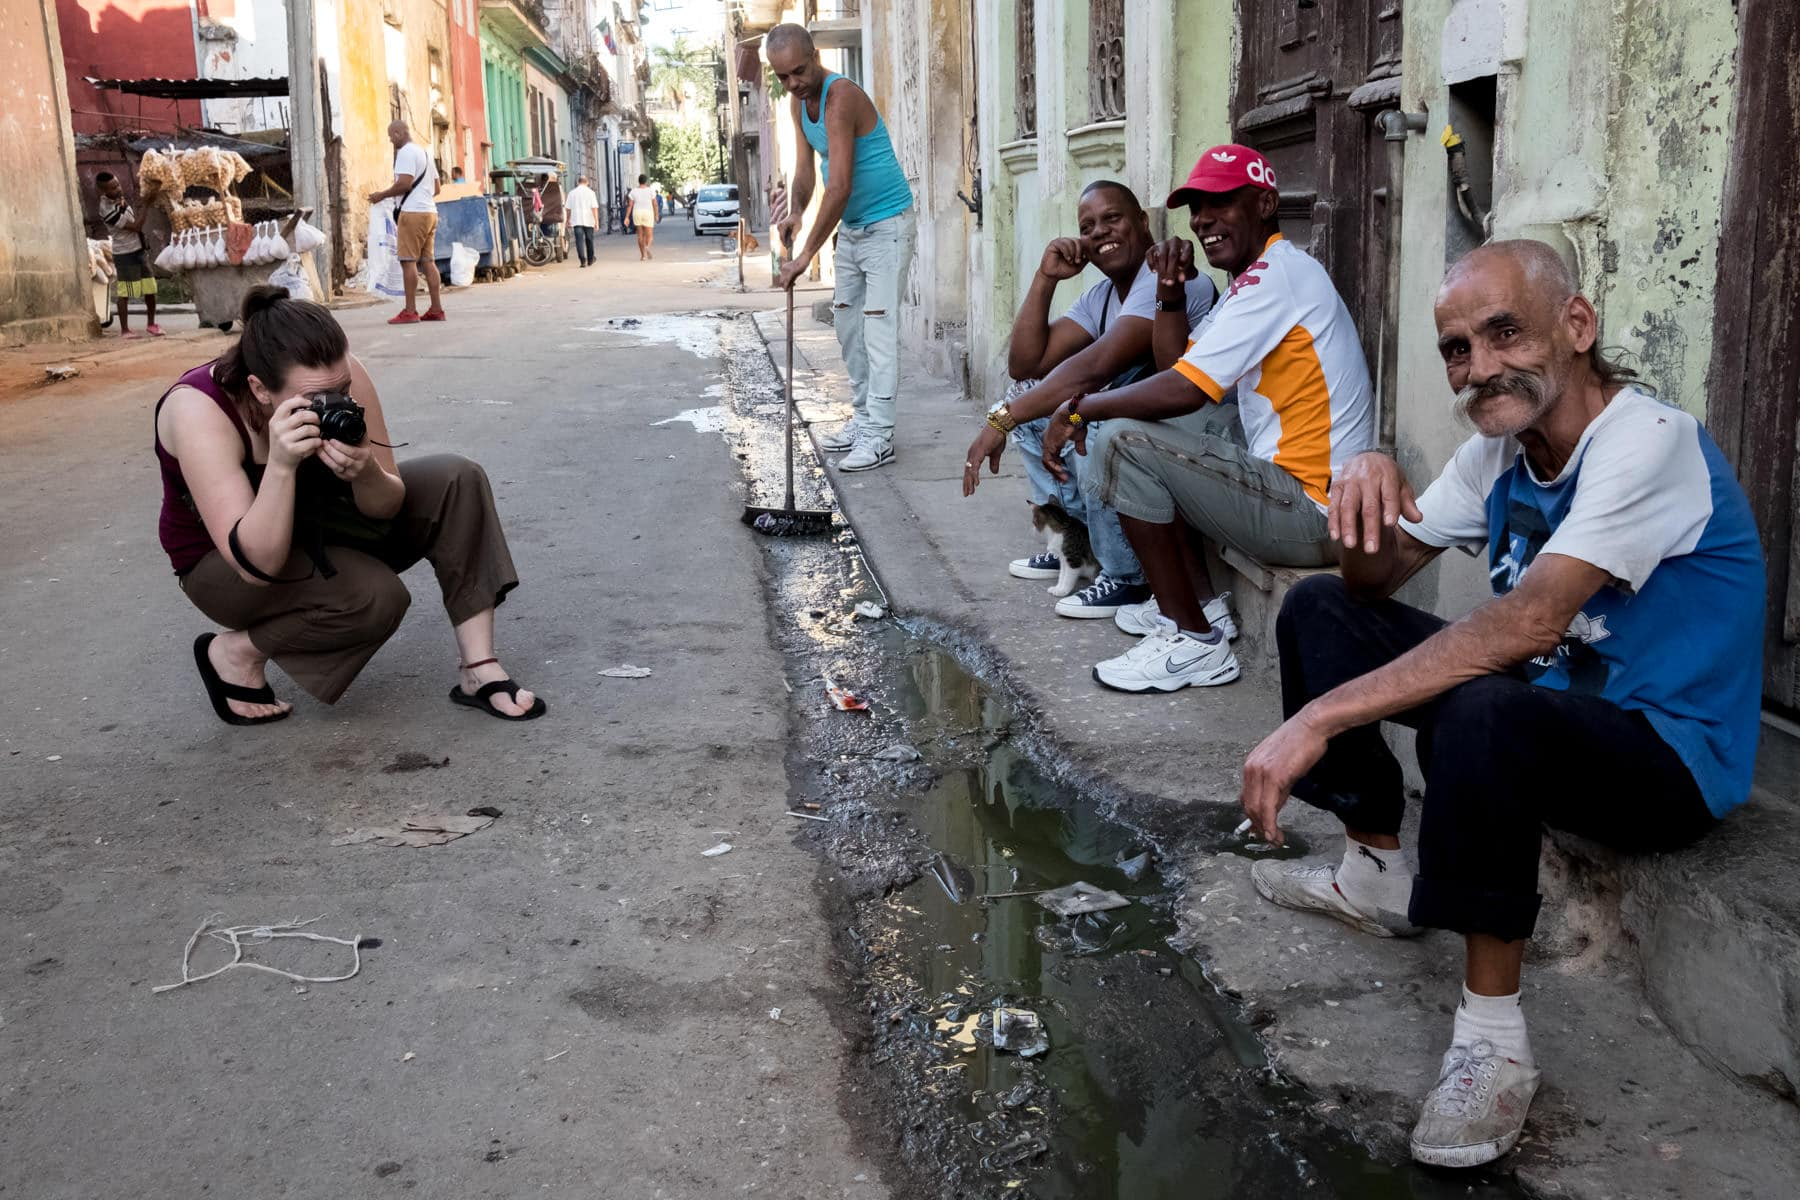 A street photographer photographing some men on the streets of Havana